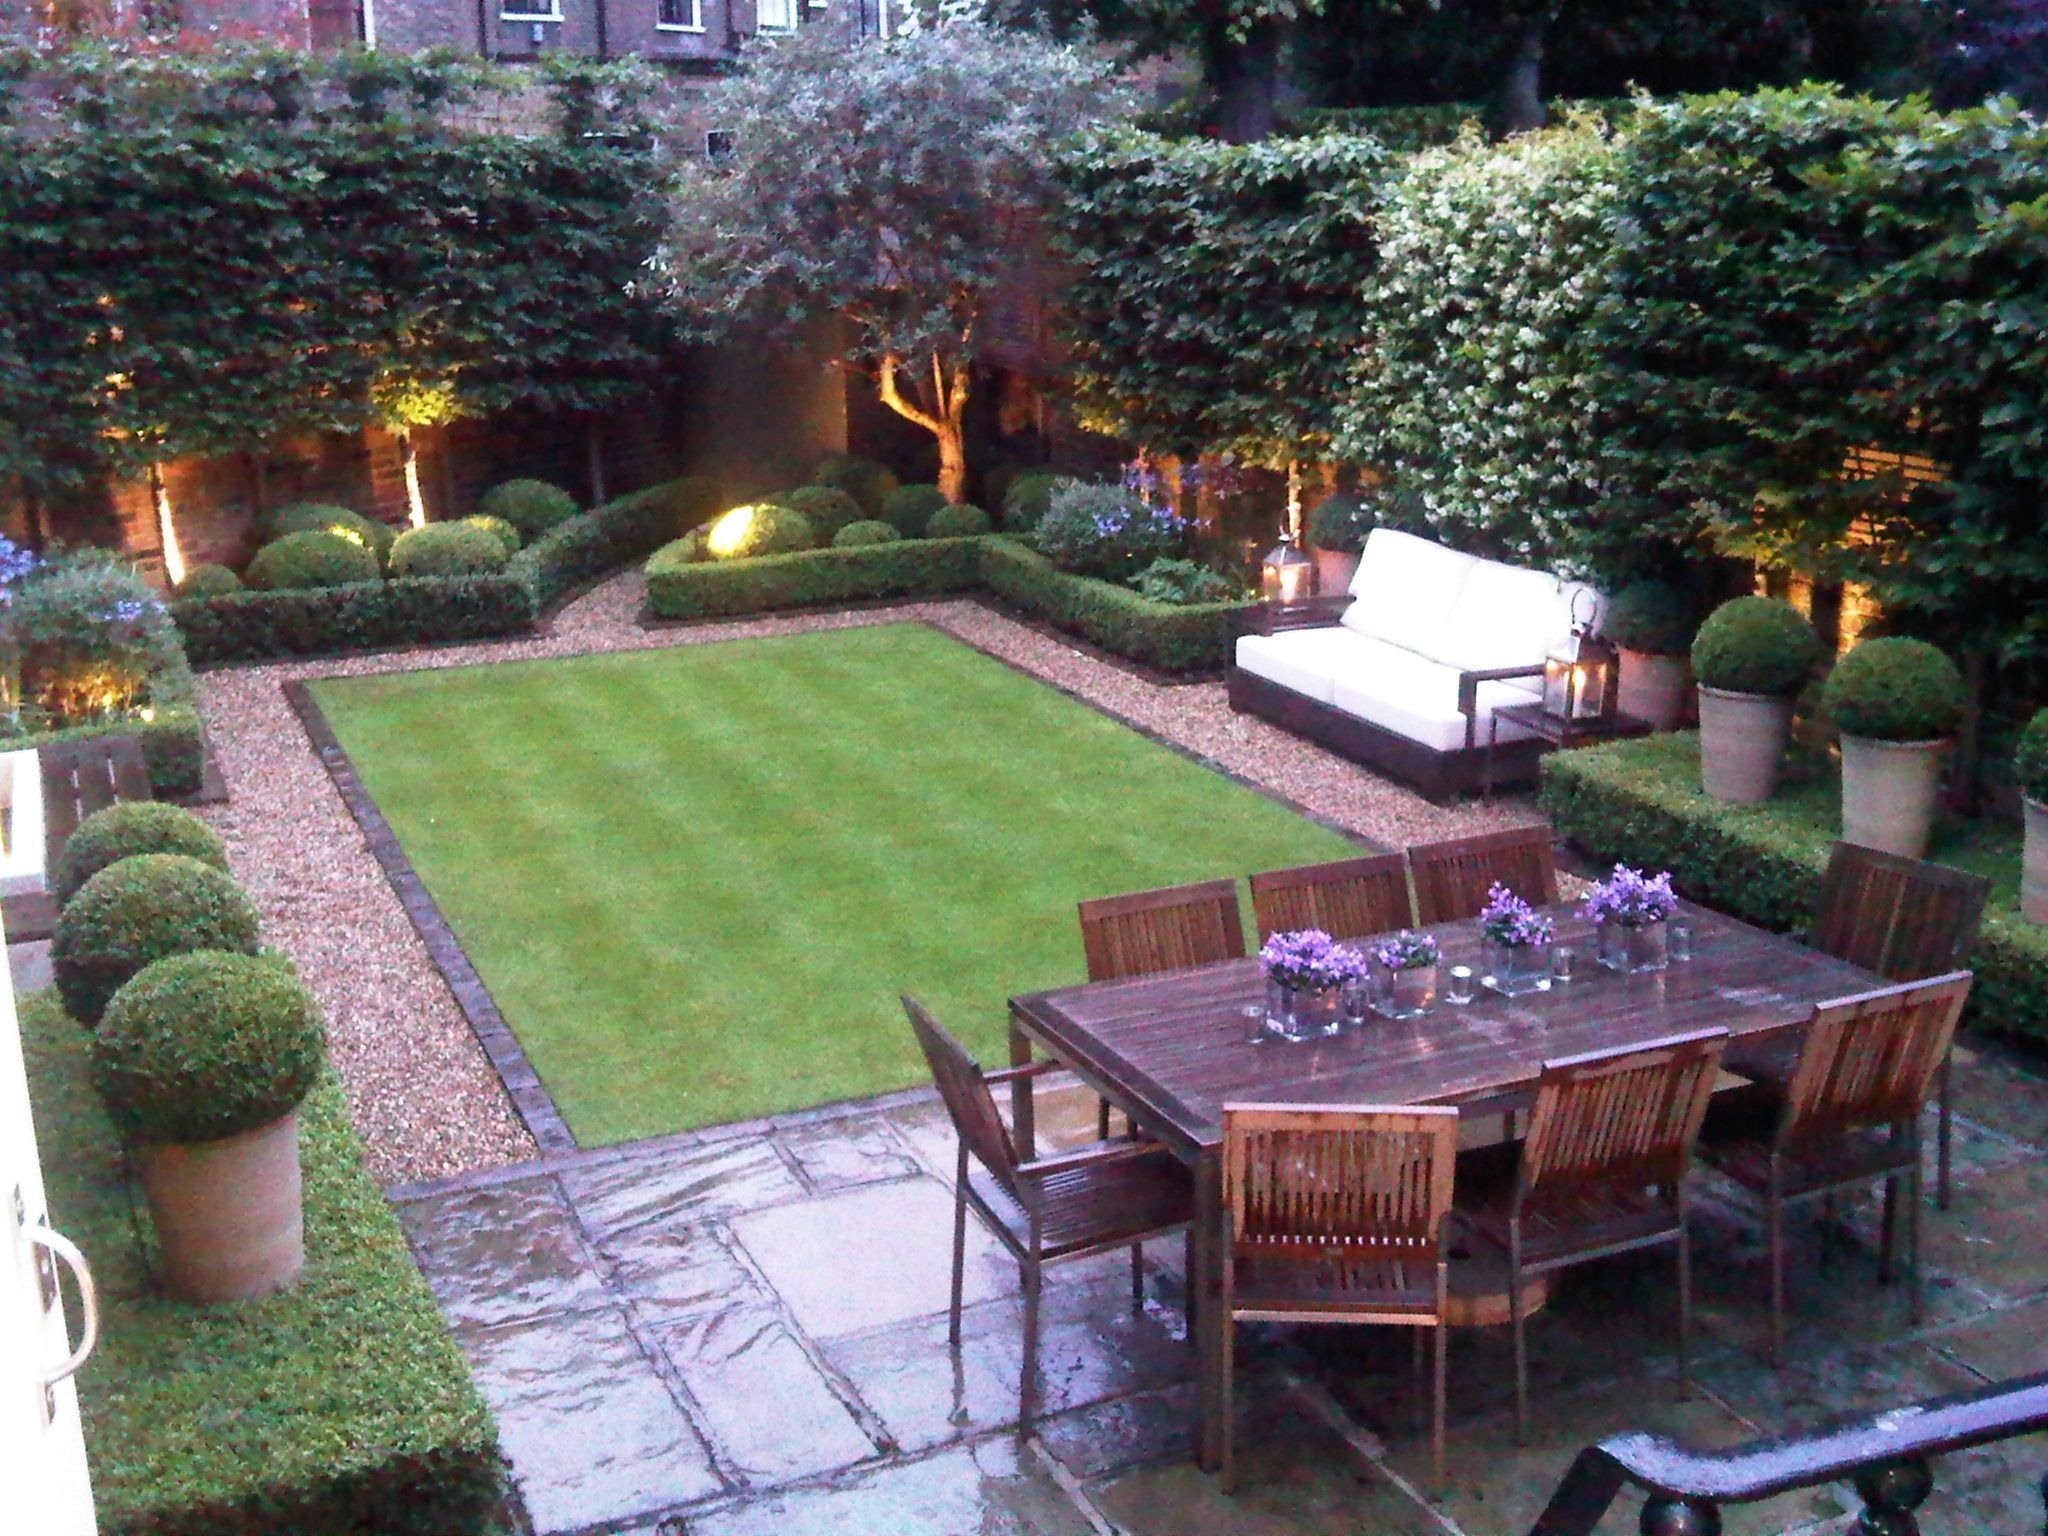 Lauren 39 s garden inspiration gardens garden ideas and for Small garden design ideas with lawn